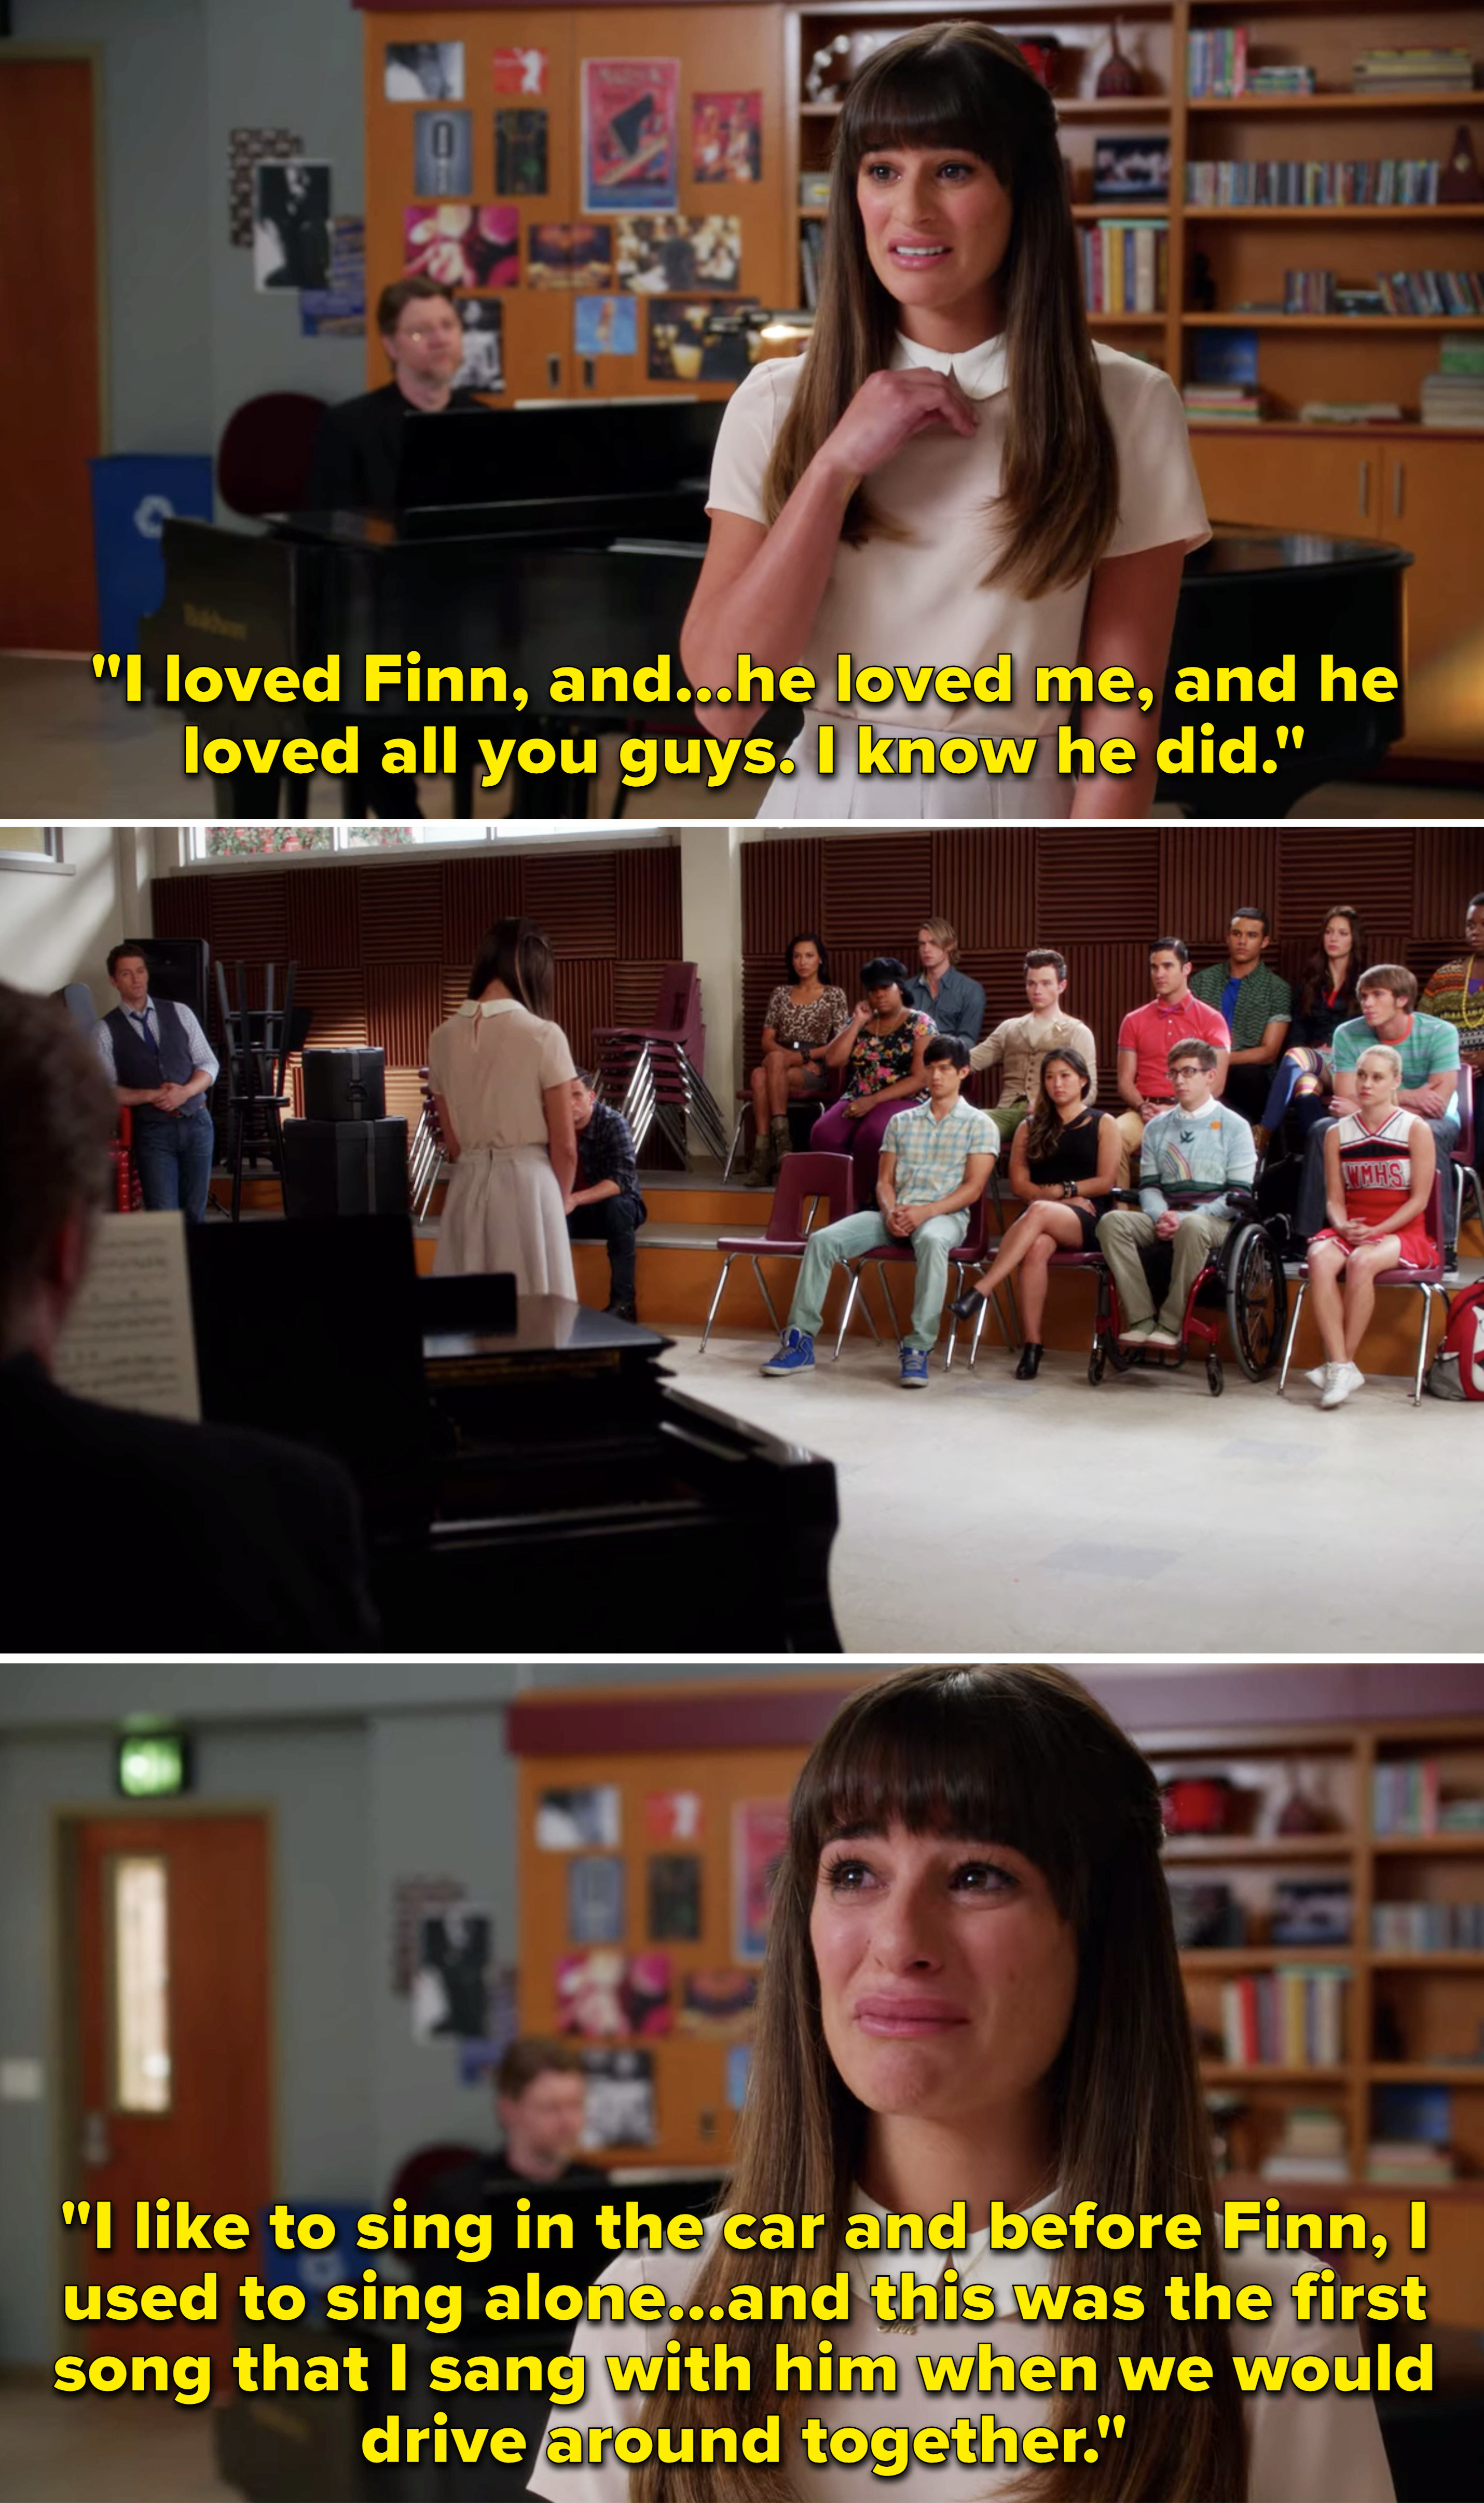 Rachel saying Finn loved her and everyone in Glee Club, and then saying she used to sing alone in the car before Finn